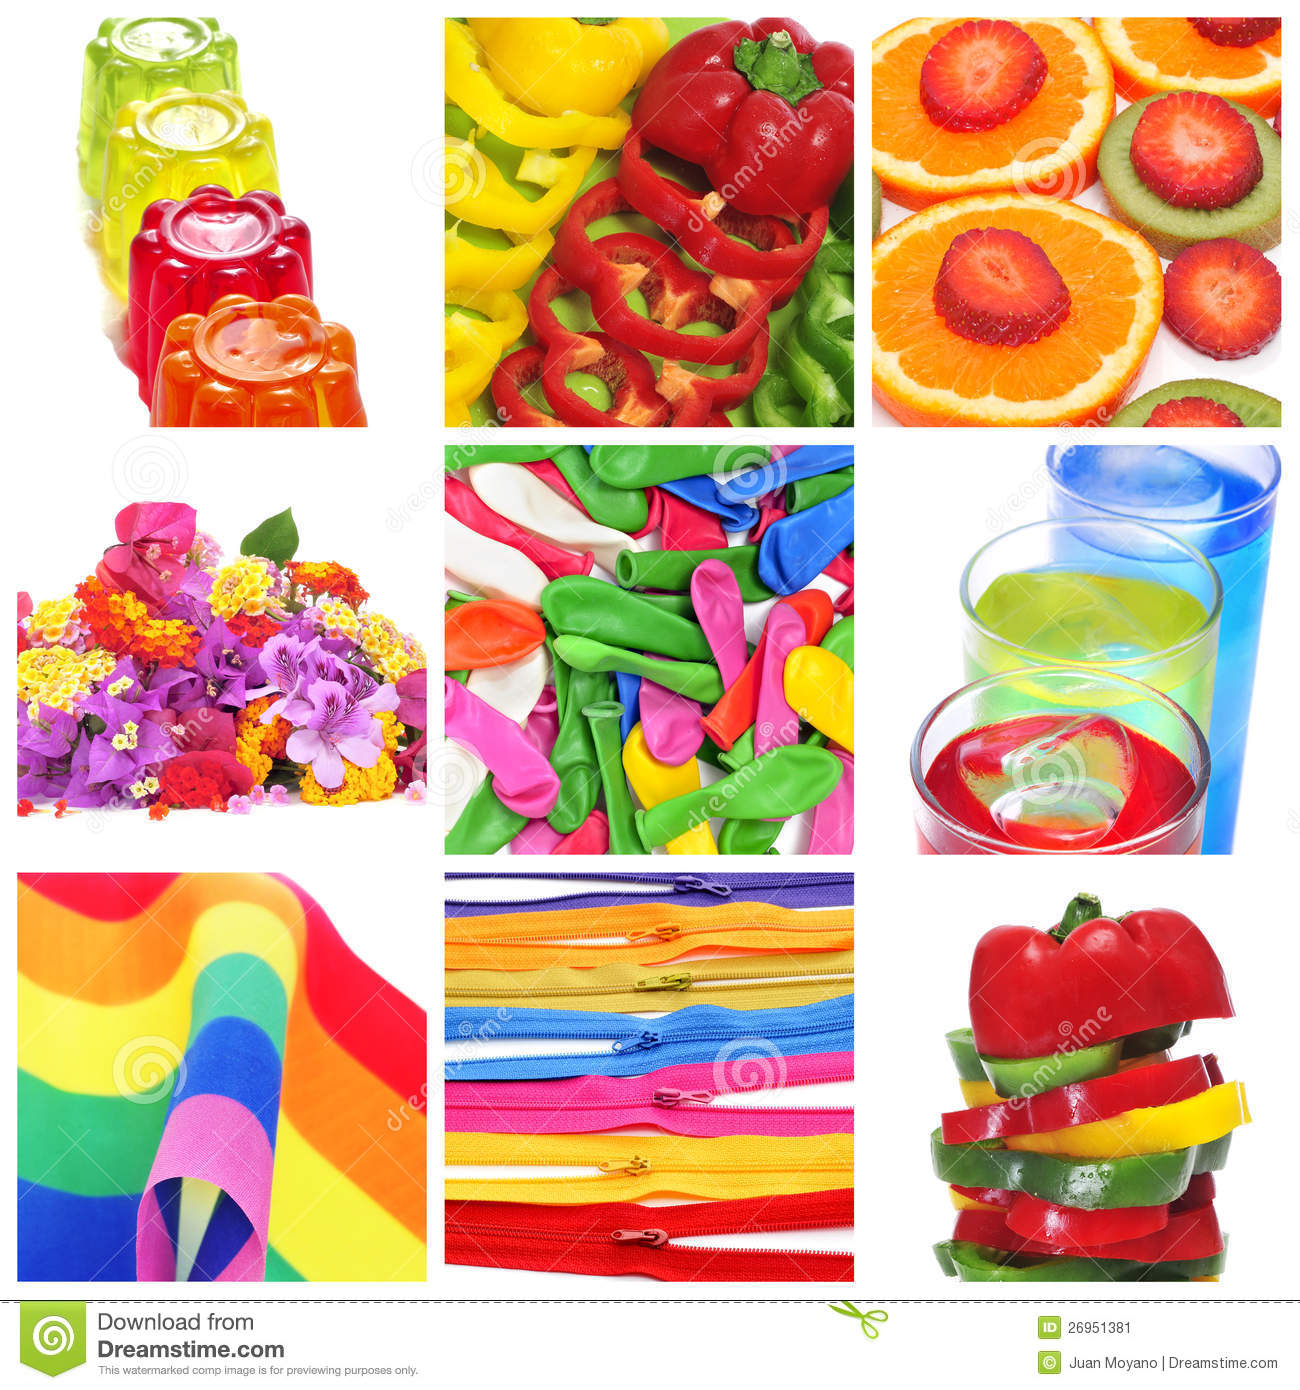 Collage of things of different colors